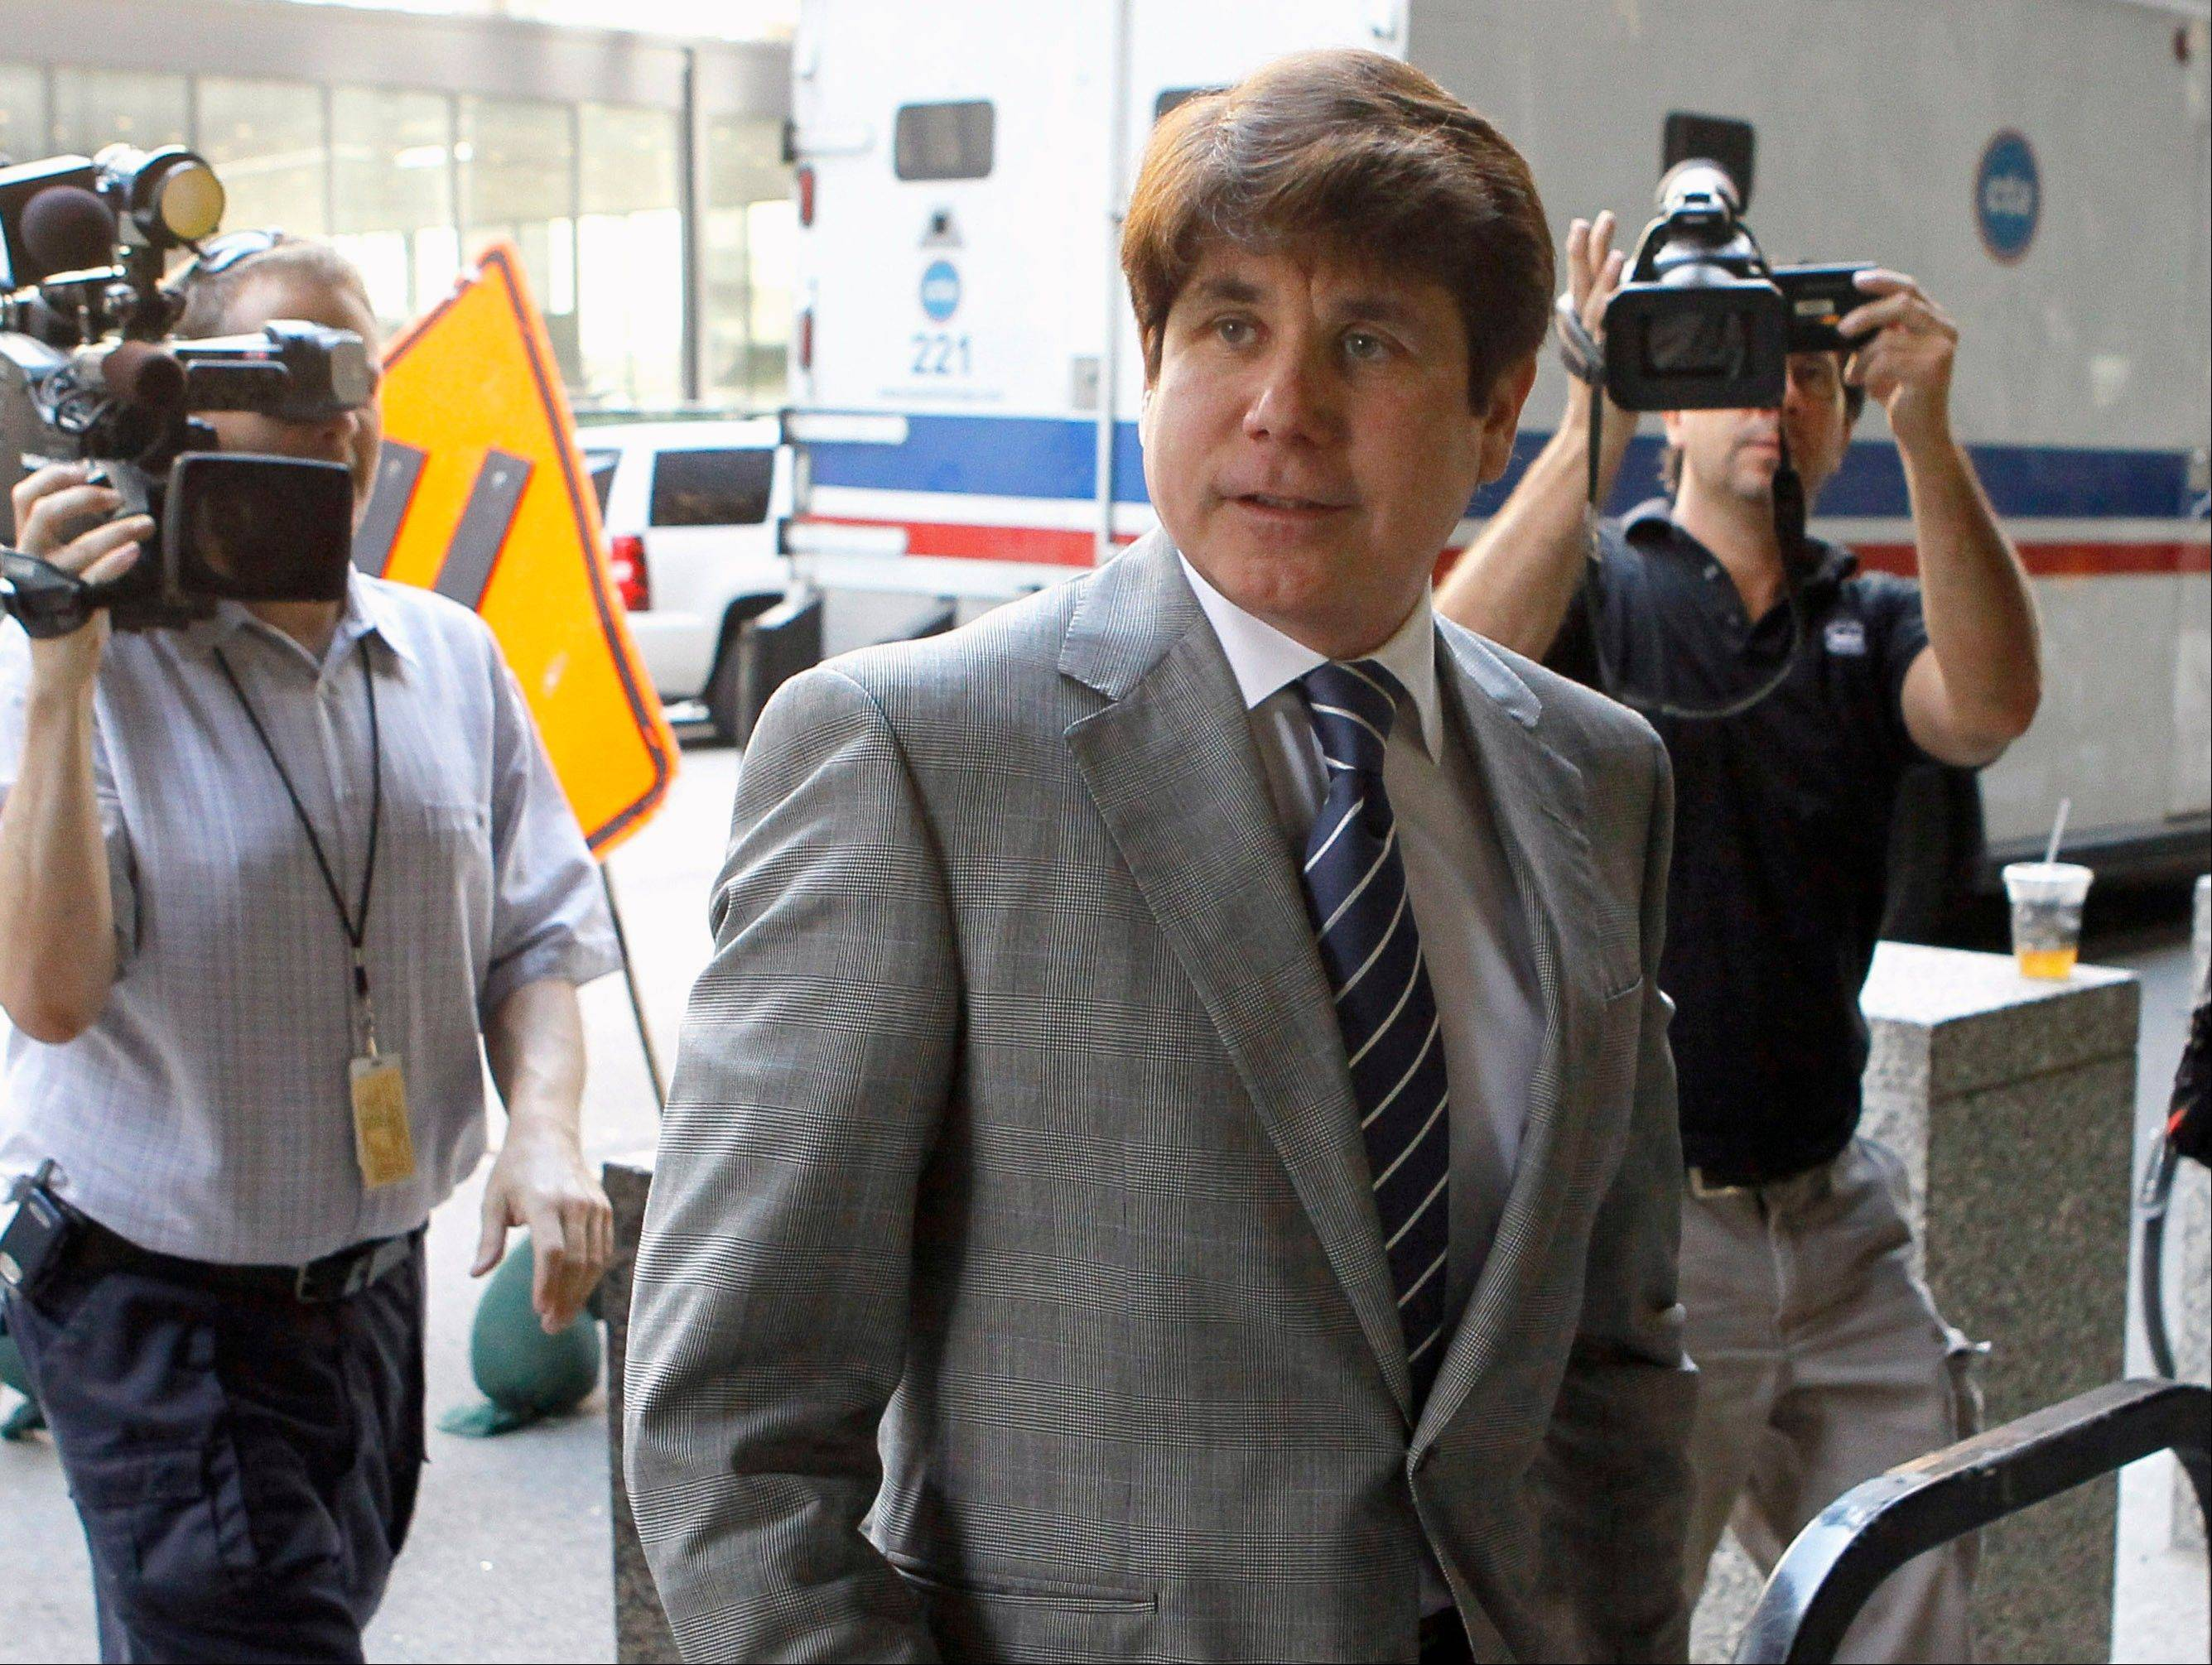 Any defiance could hurt Blagojevich at sentencing